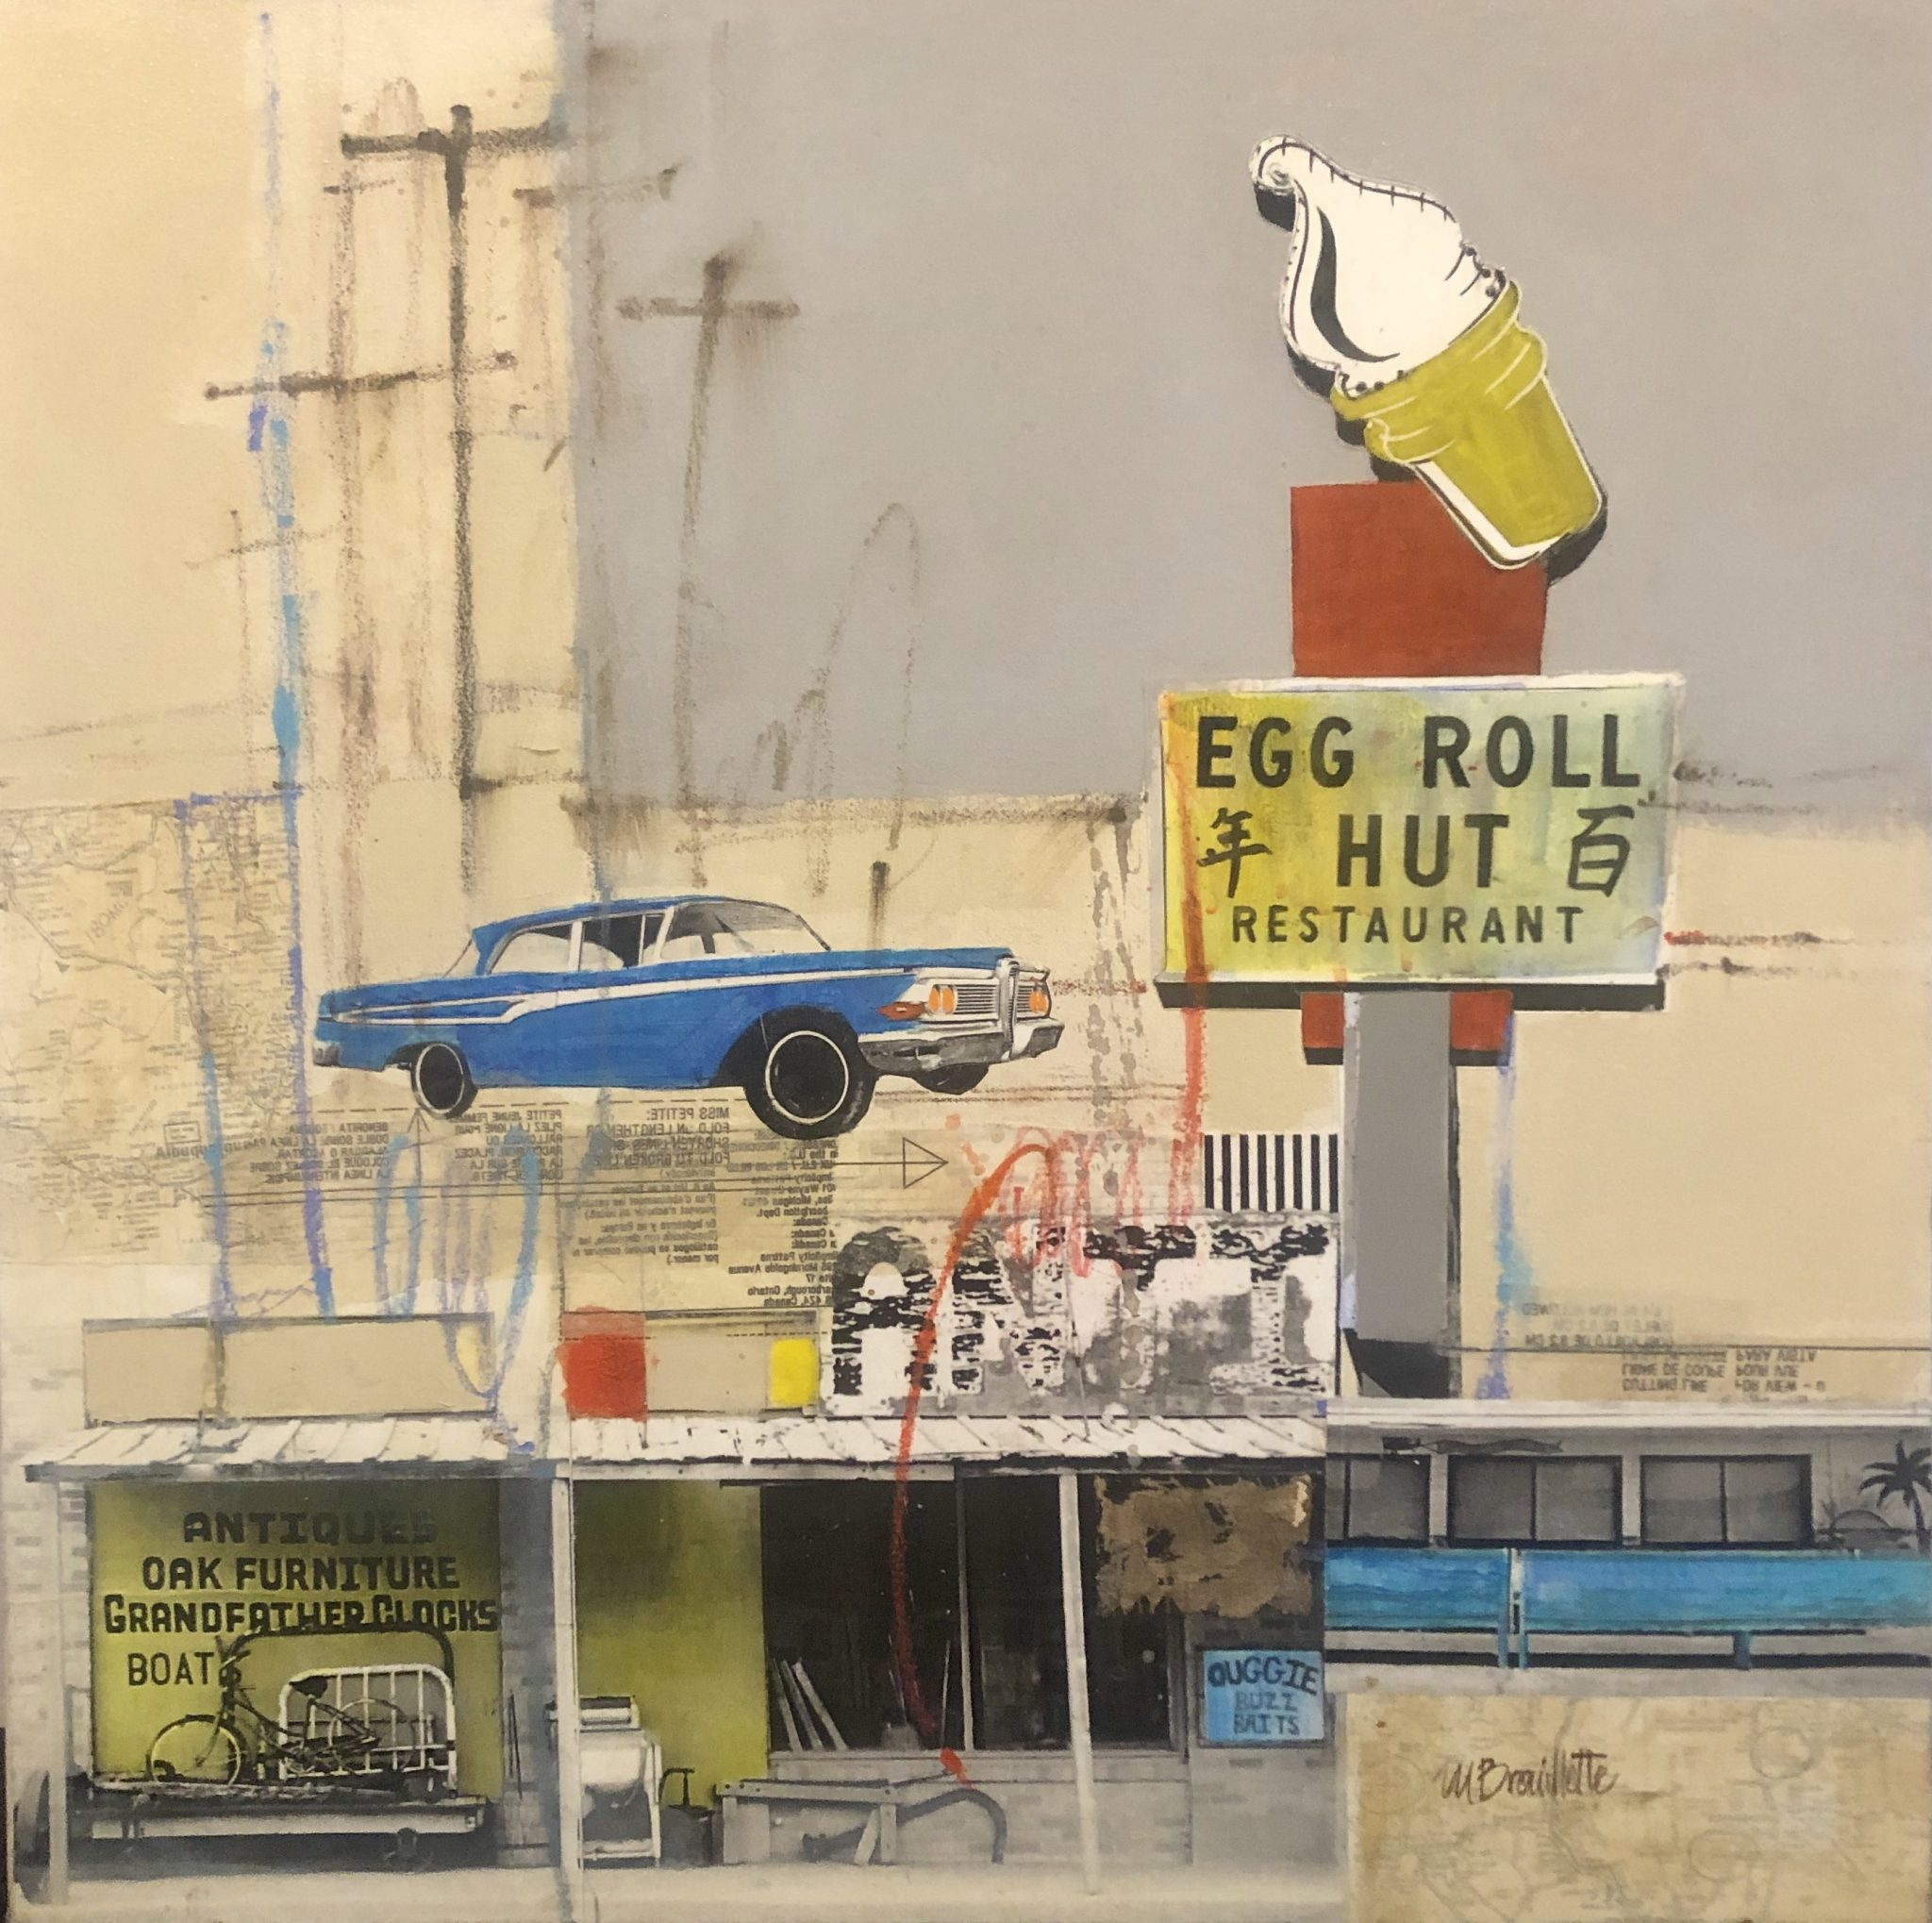 Egg Roll Hut by Maureen Brouillette